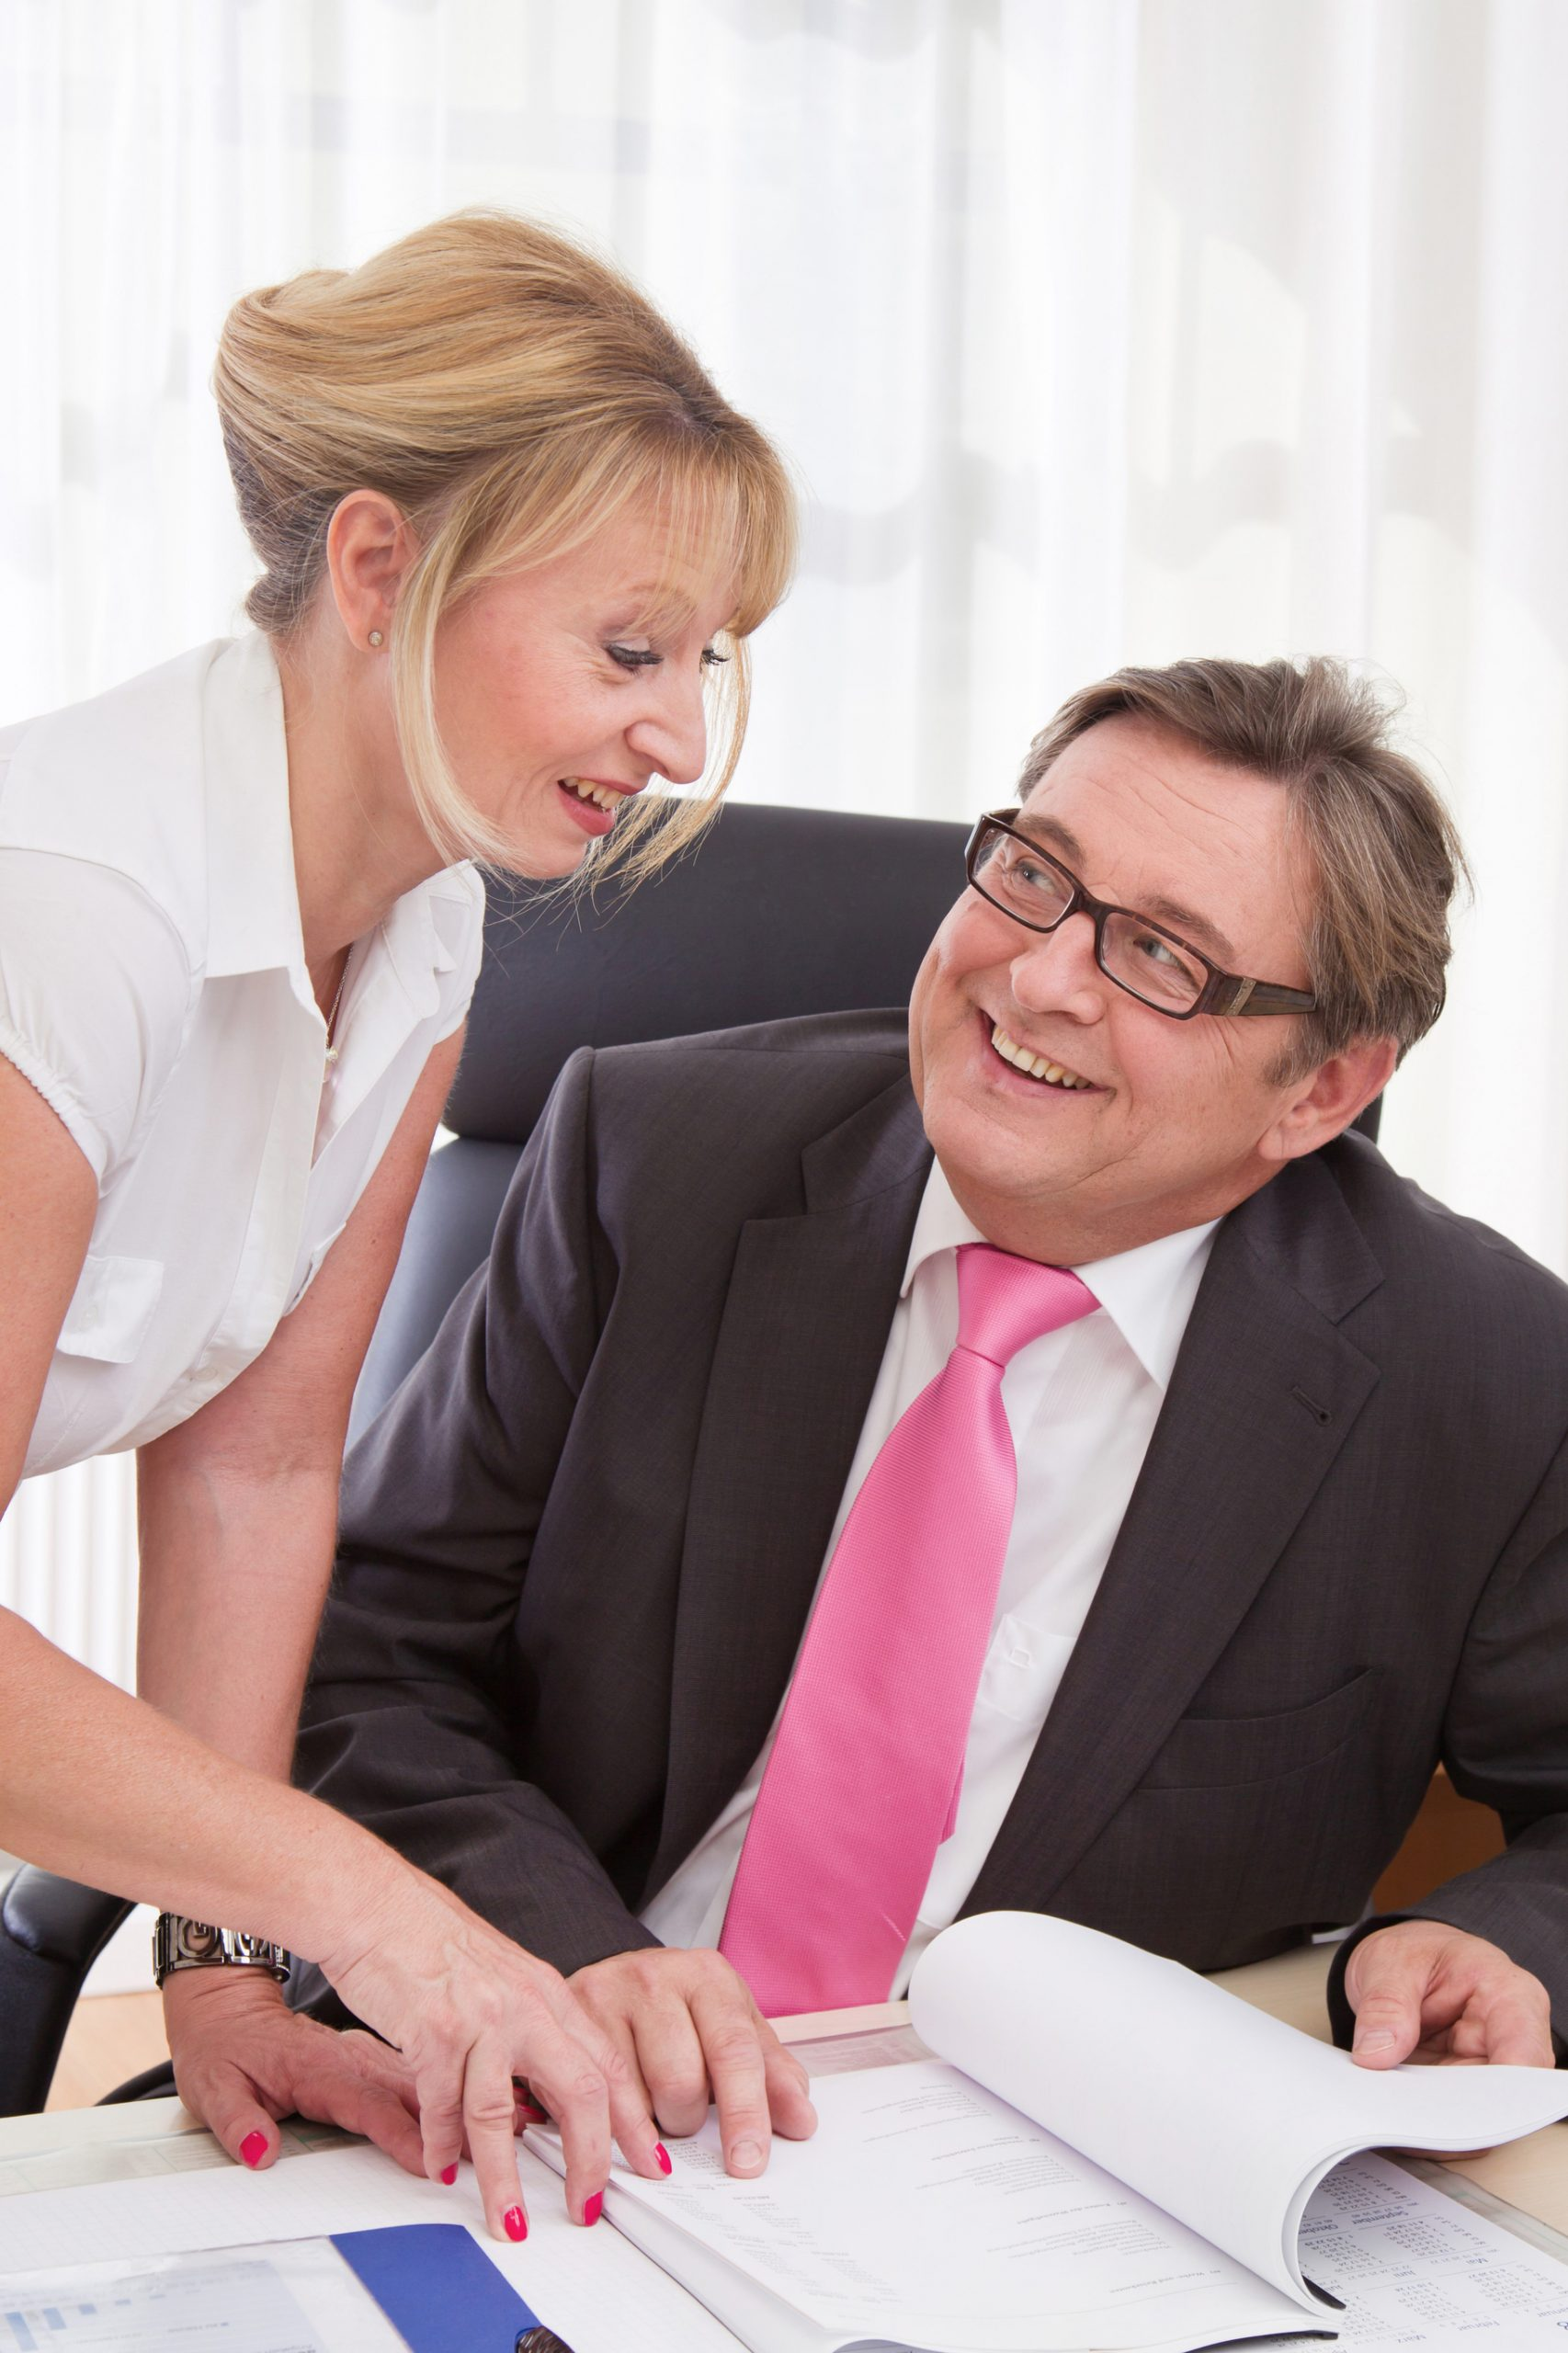 7 Ways to Tell That Your Married Boss Likes You Romantically